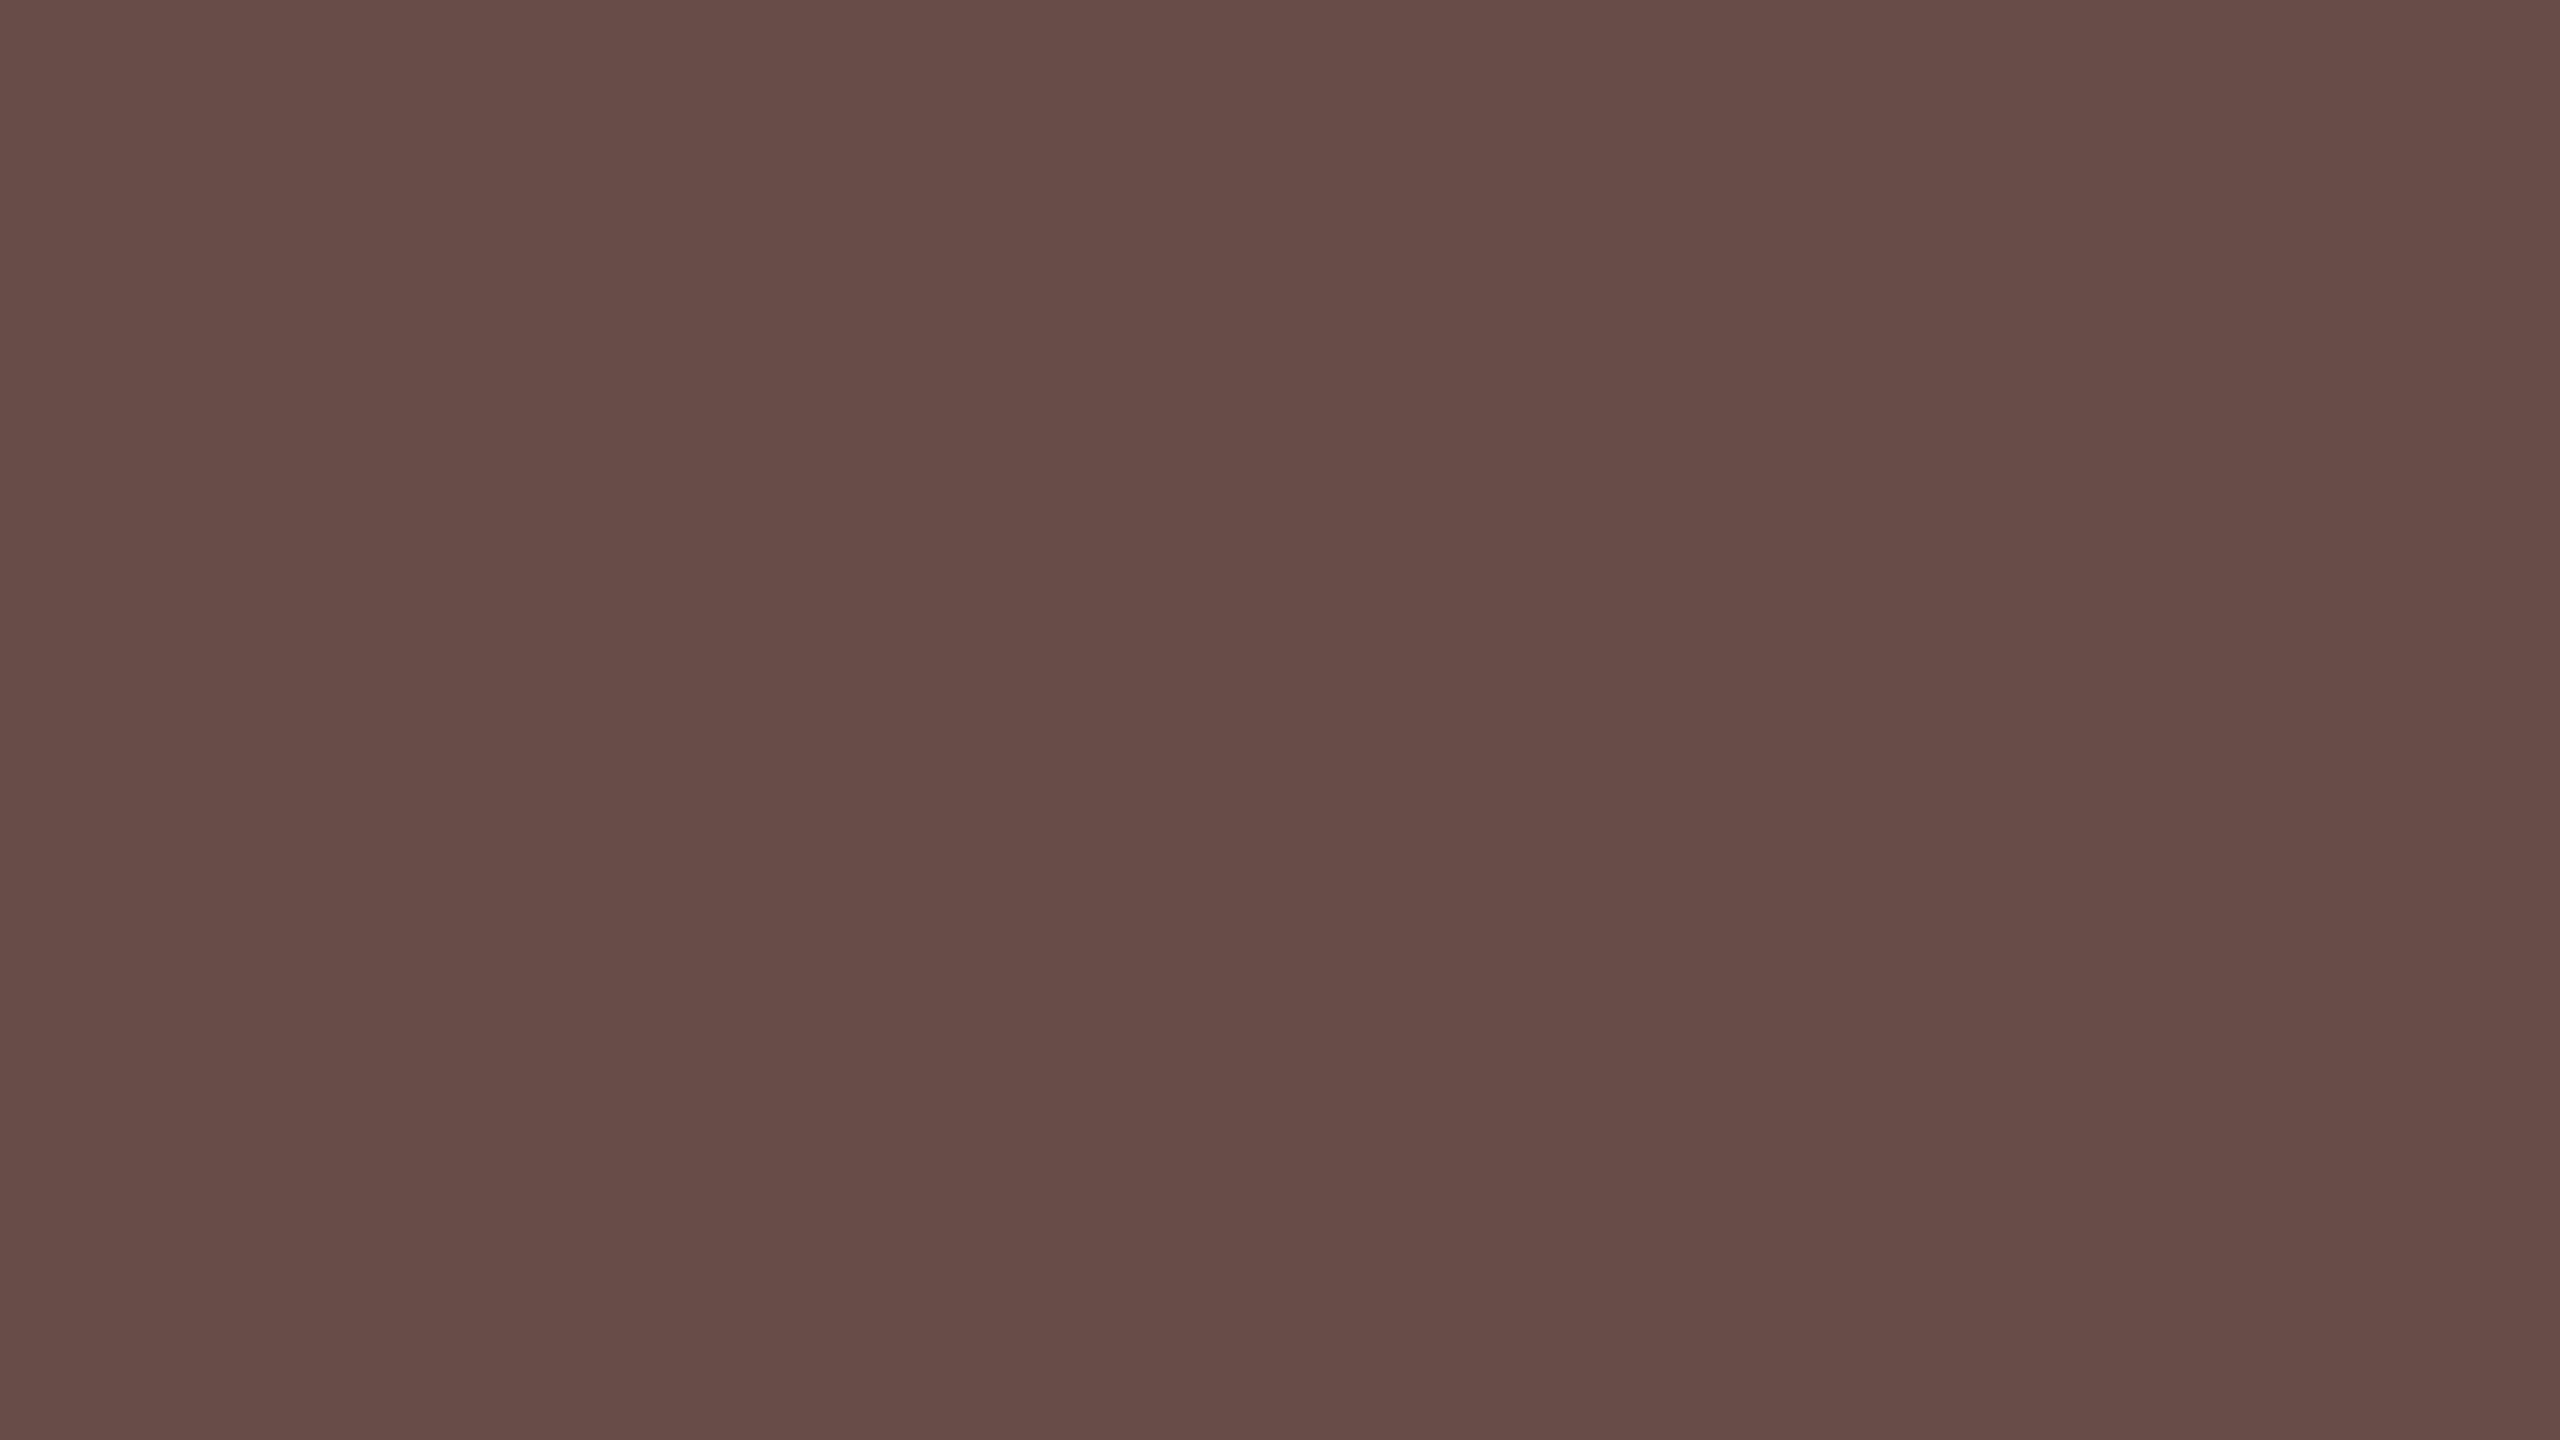 2560x1440 Medium Taupe Solid Color Background